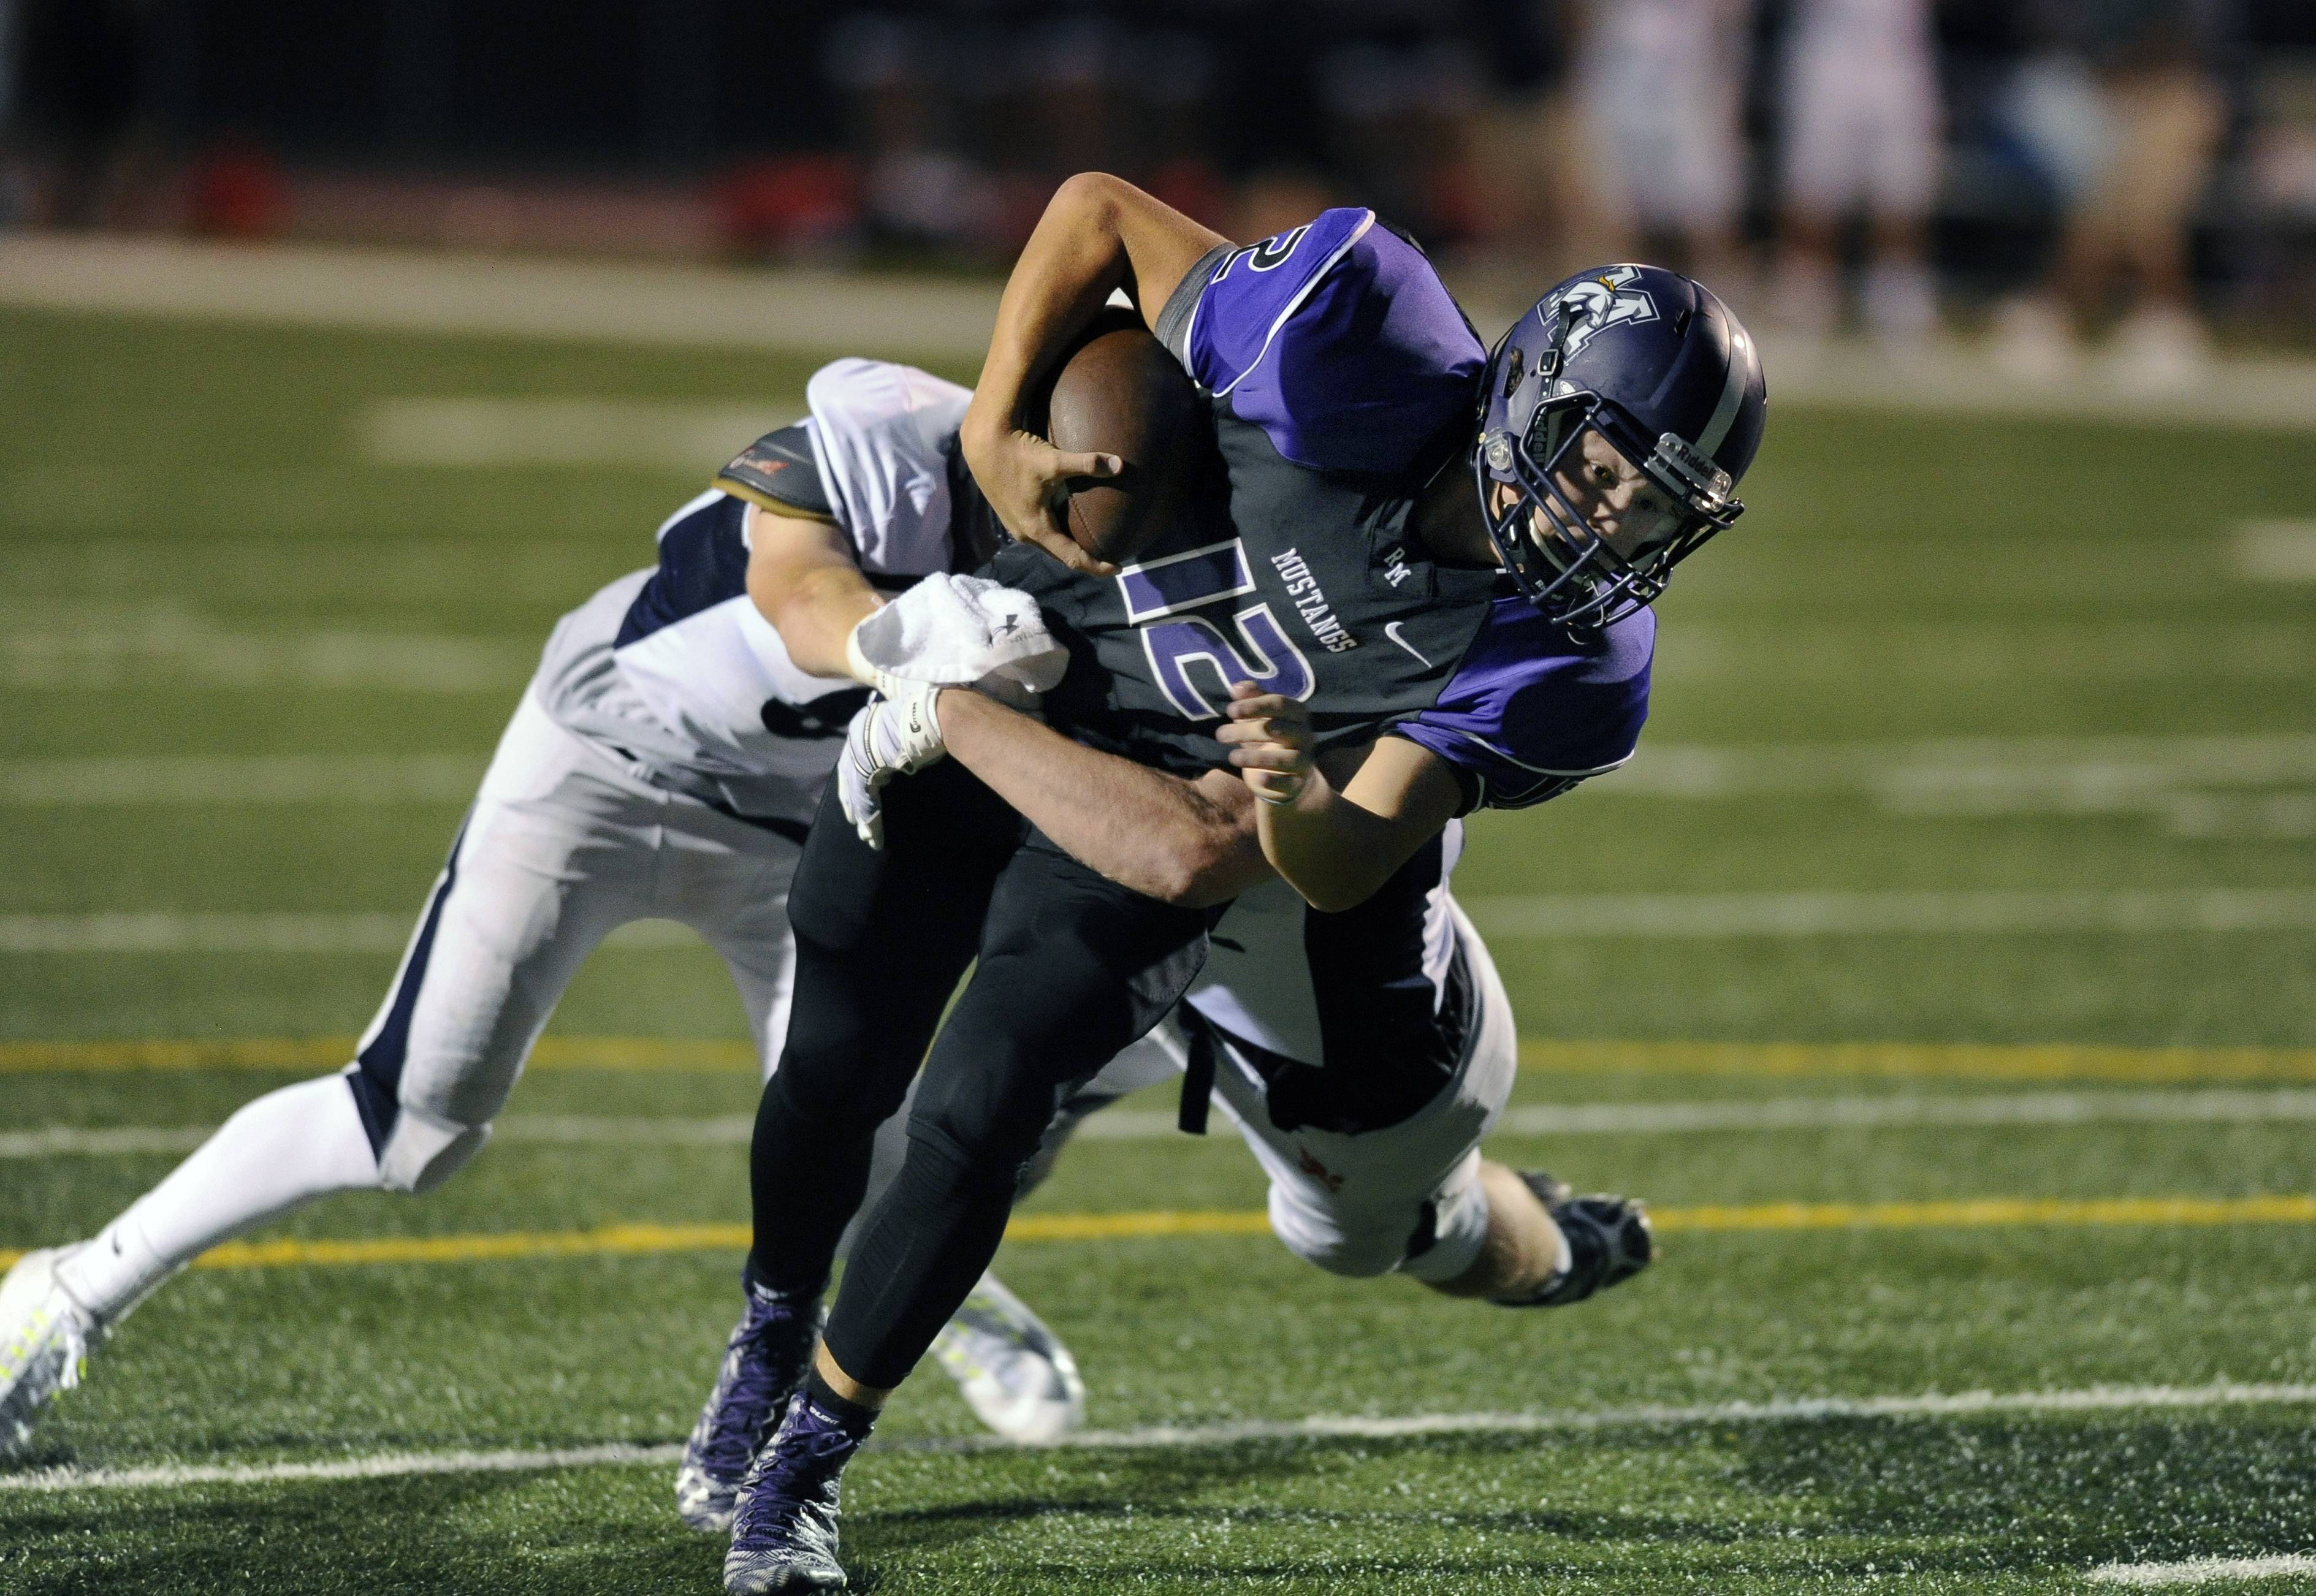 Quarterback Asher O'Hara finds the end zone with the first touchdown of the season for Rolling Meadows on Friday night against visiting St. Viator.